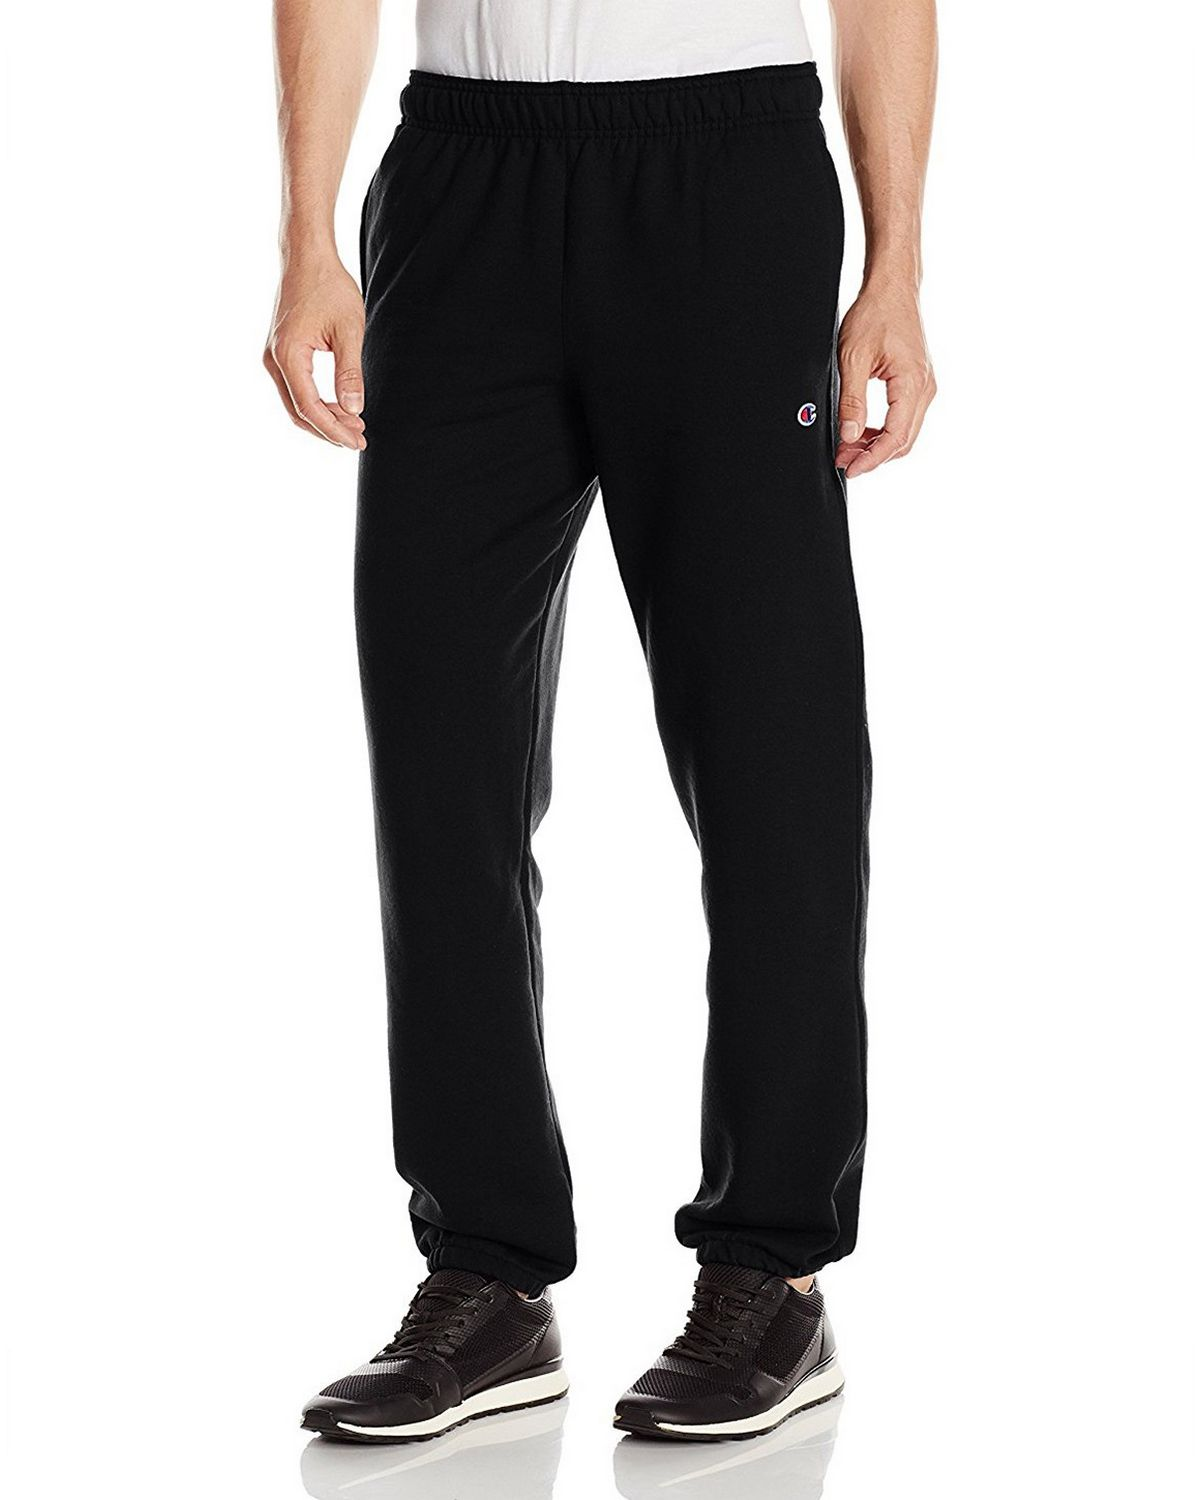 Champion P0894 Mens Powerblend Fleece Pants - Black - S P0894